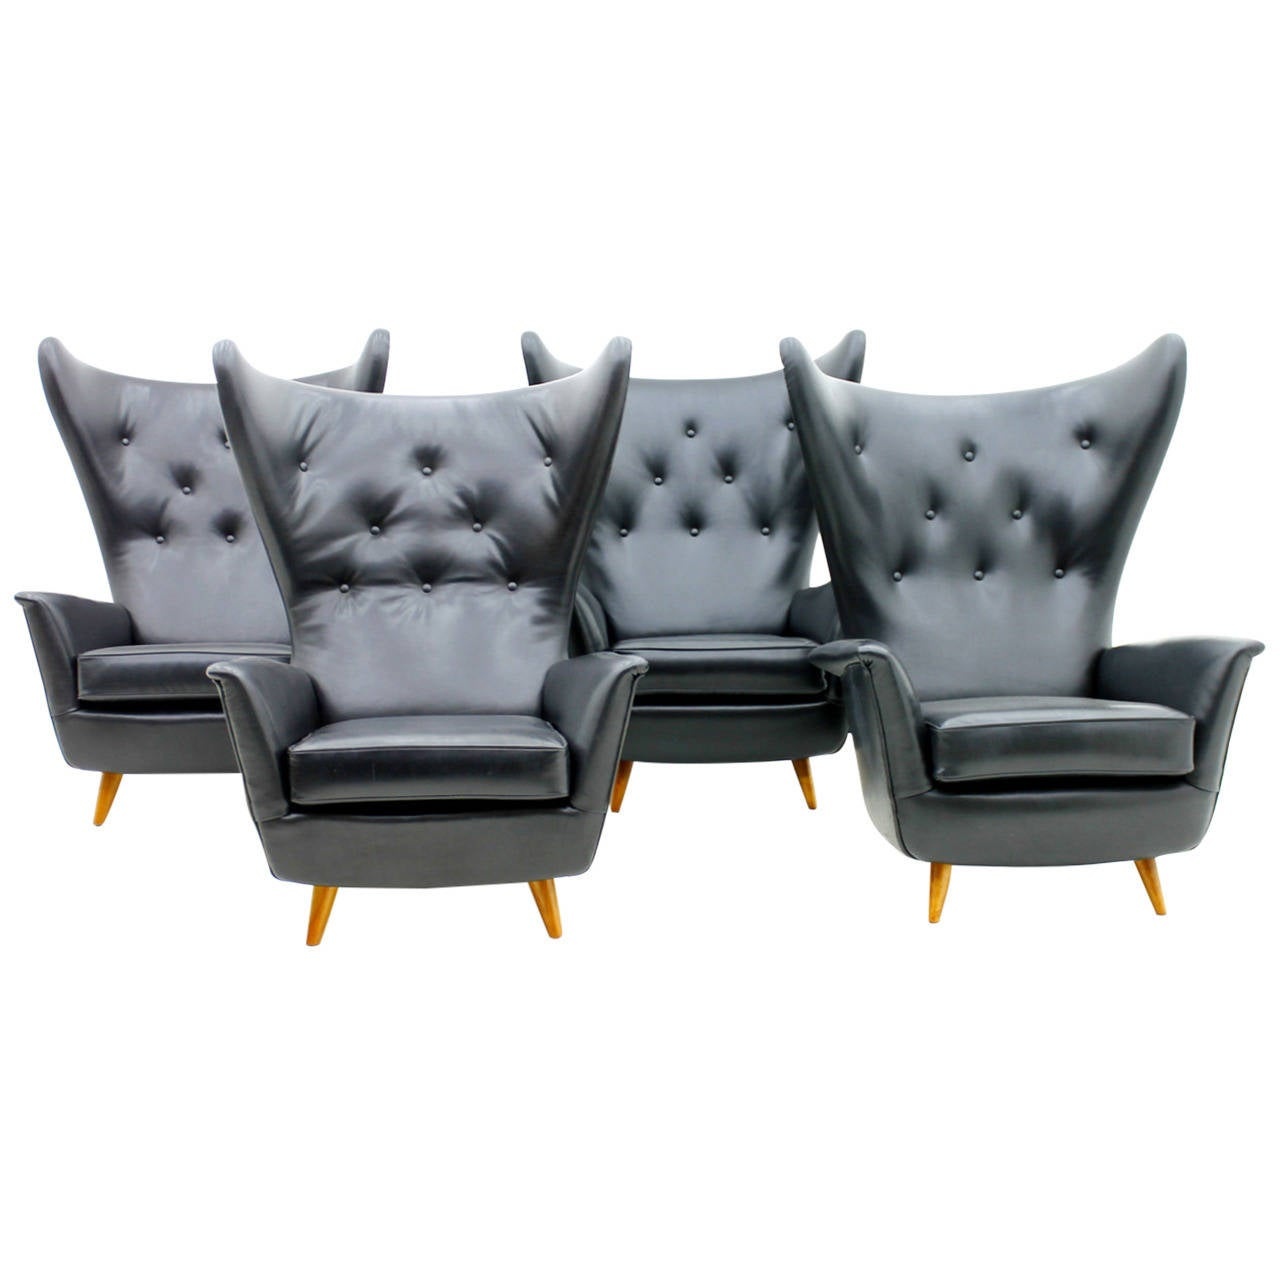 Four Black Leather Wing Lounge Chairs, 1950s 3